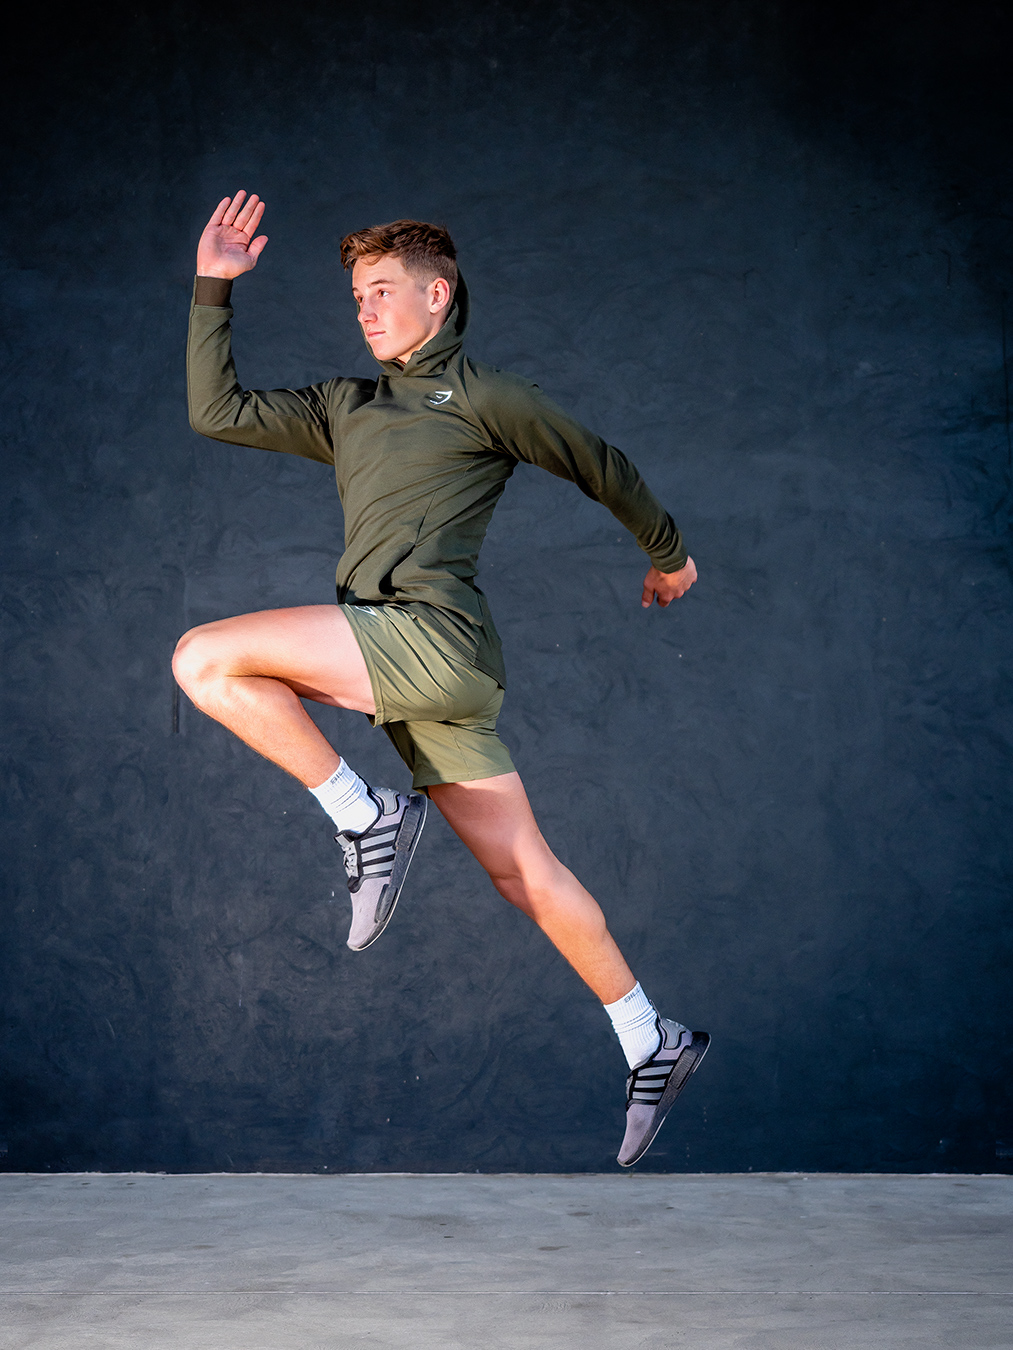 Adelaides young up and coming fitness model Ryan jumping